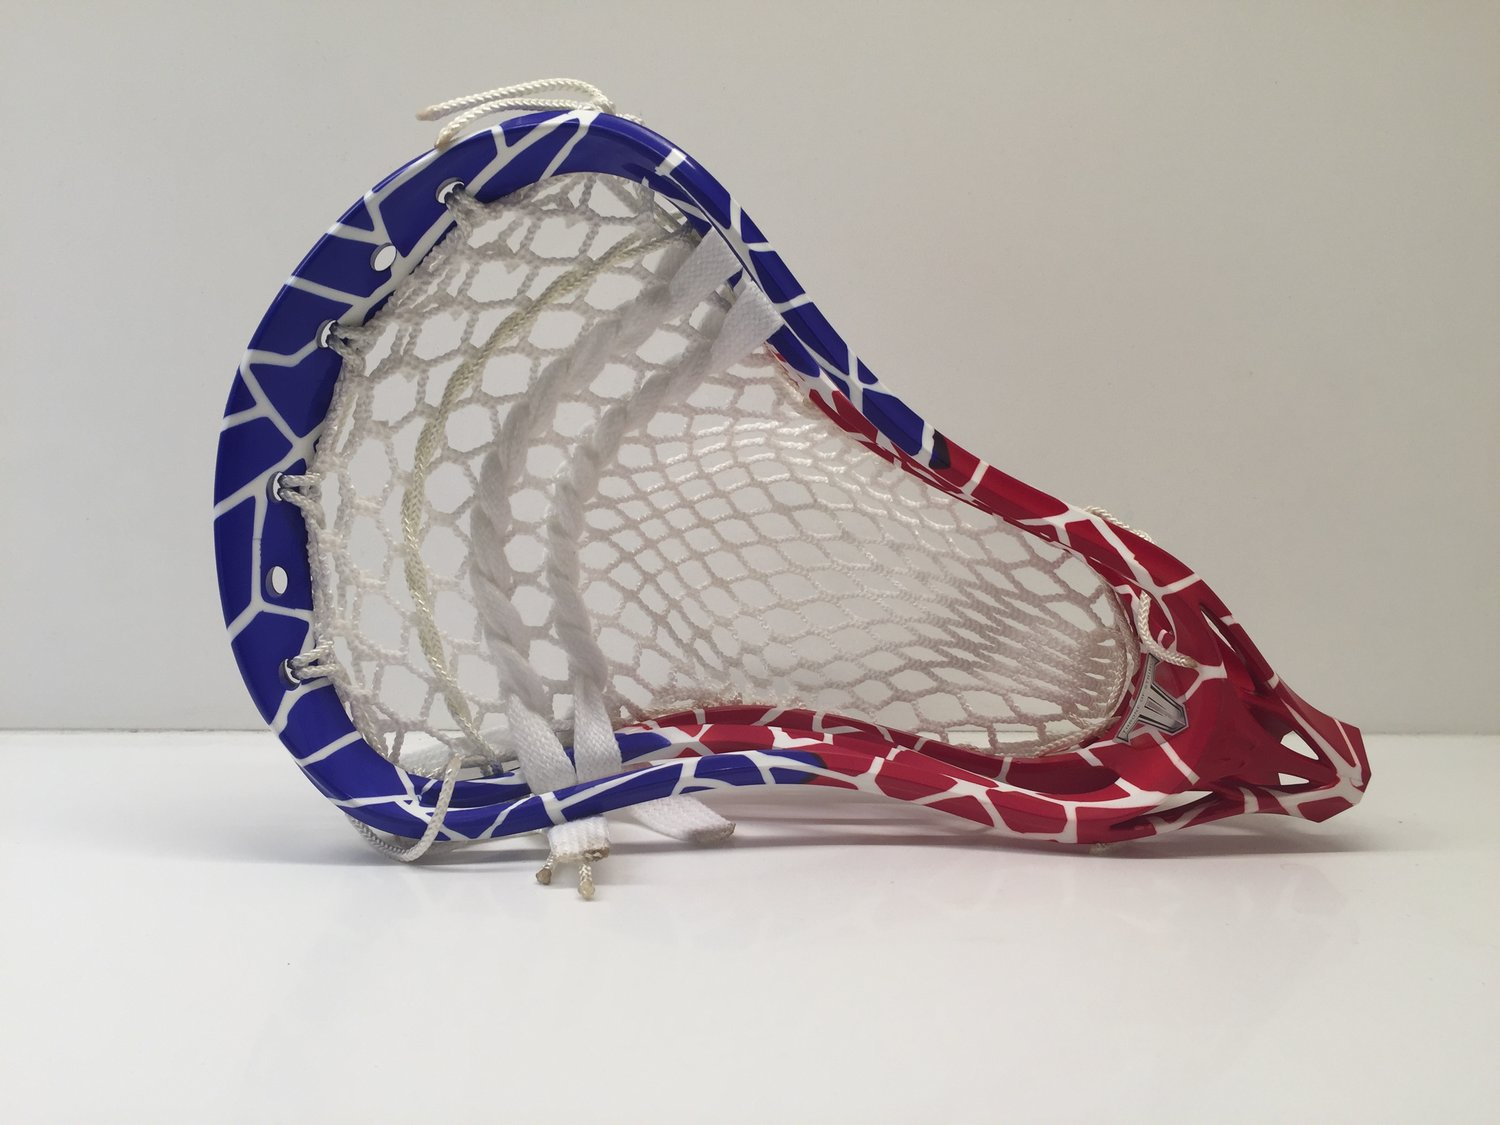 Evo 4 Hs Dyed Red And Blue With Semi Soft Performance Mesh